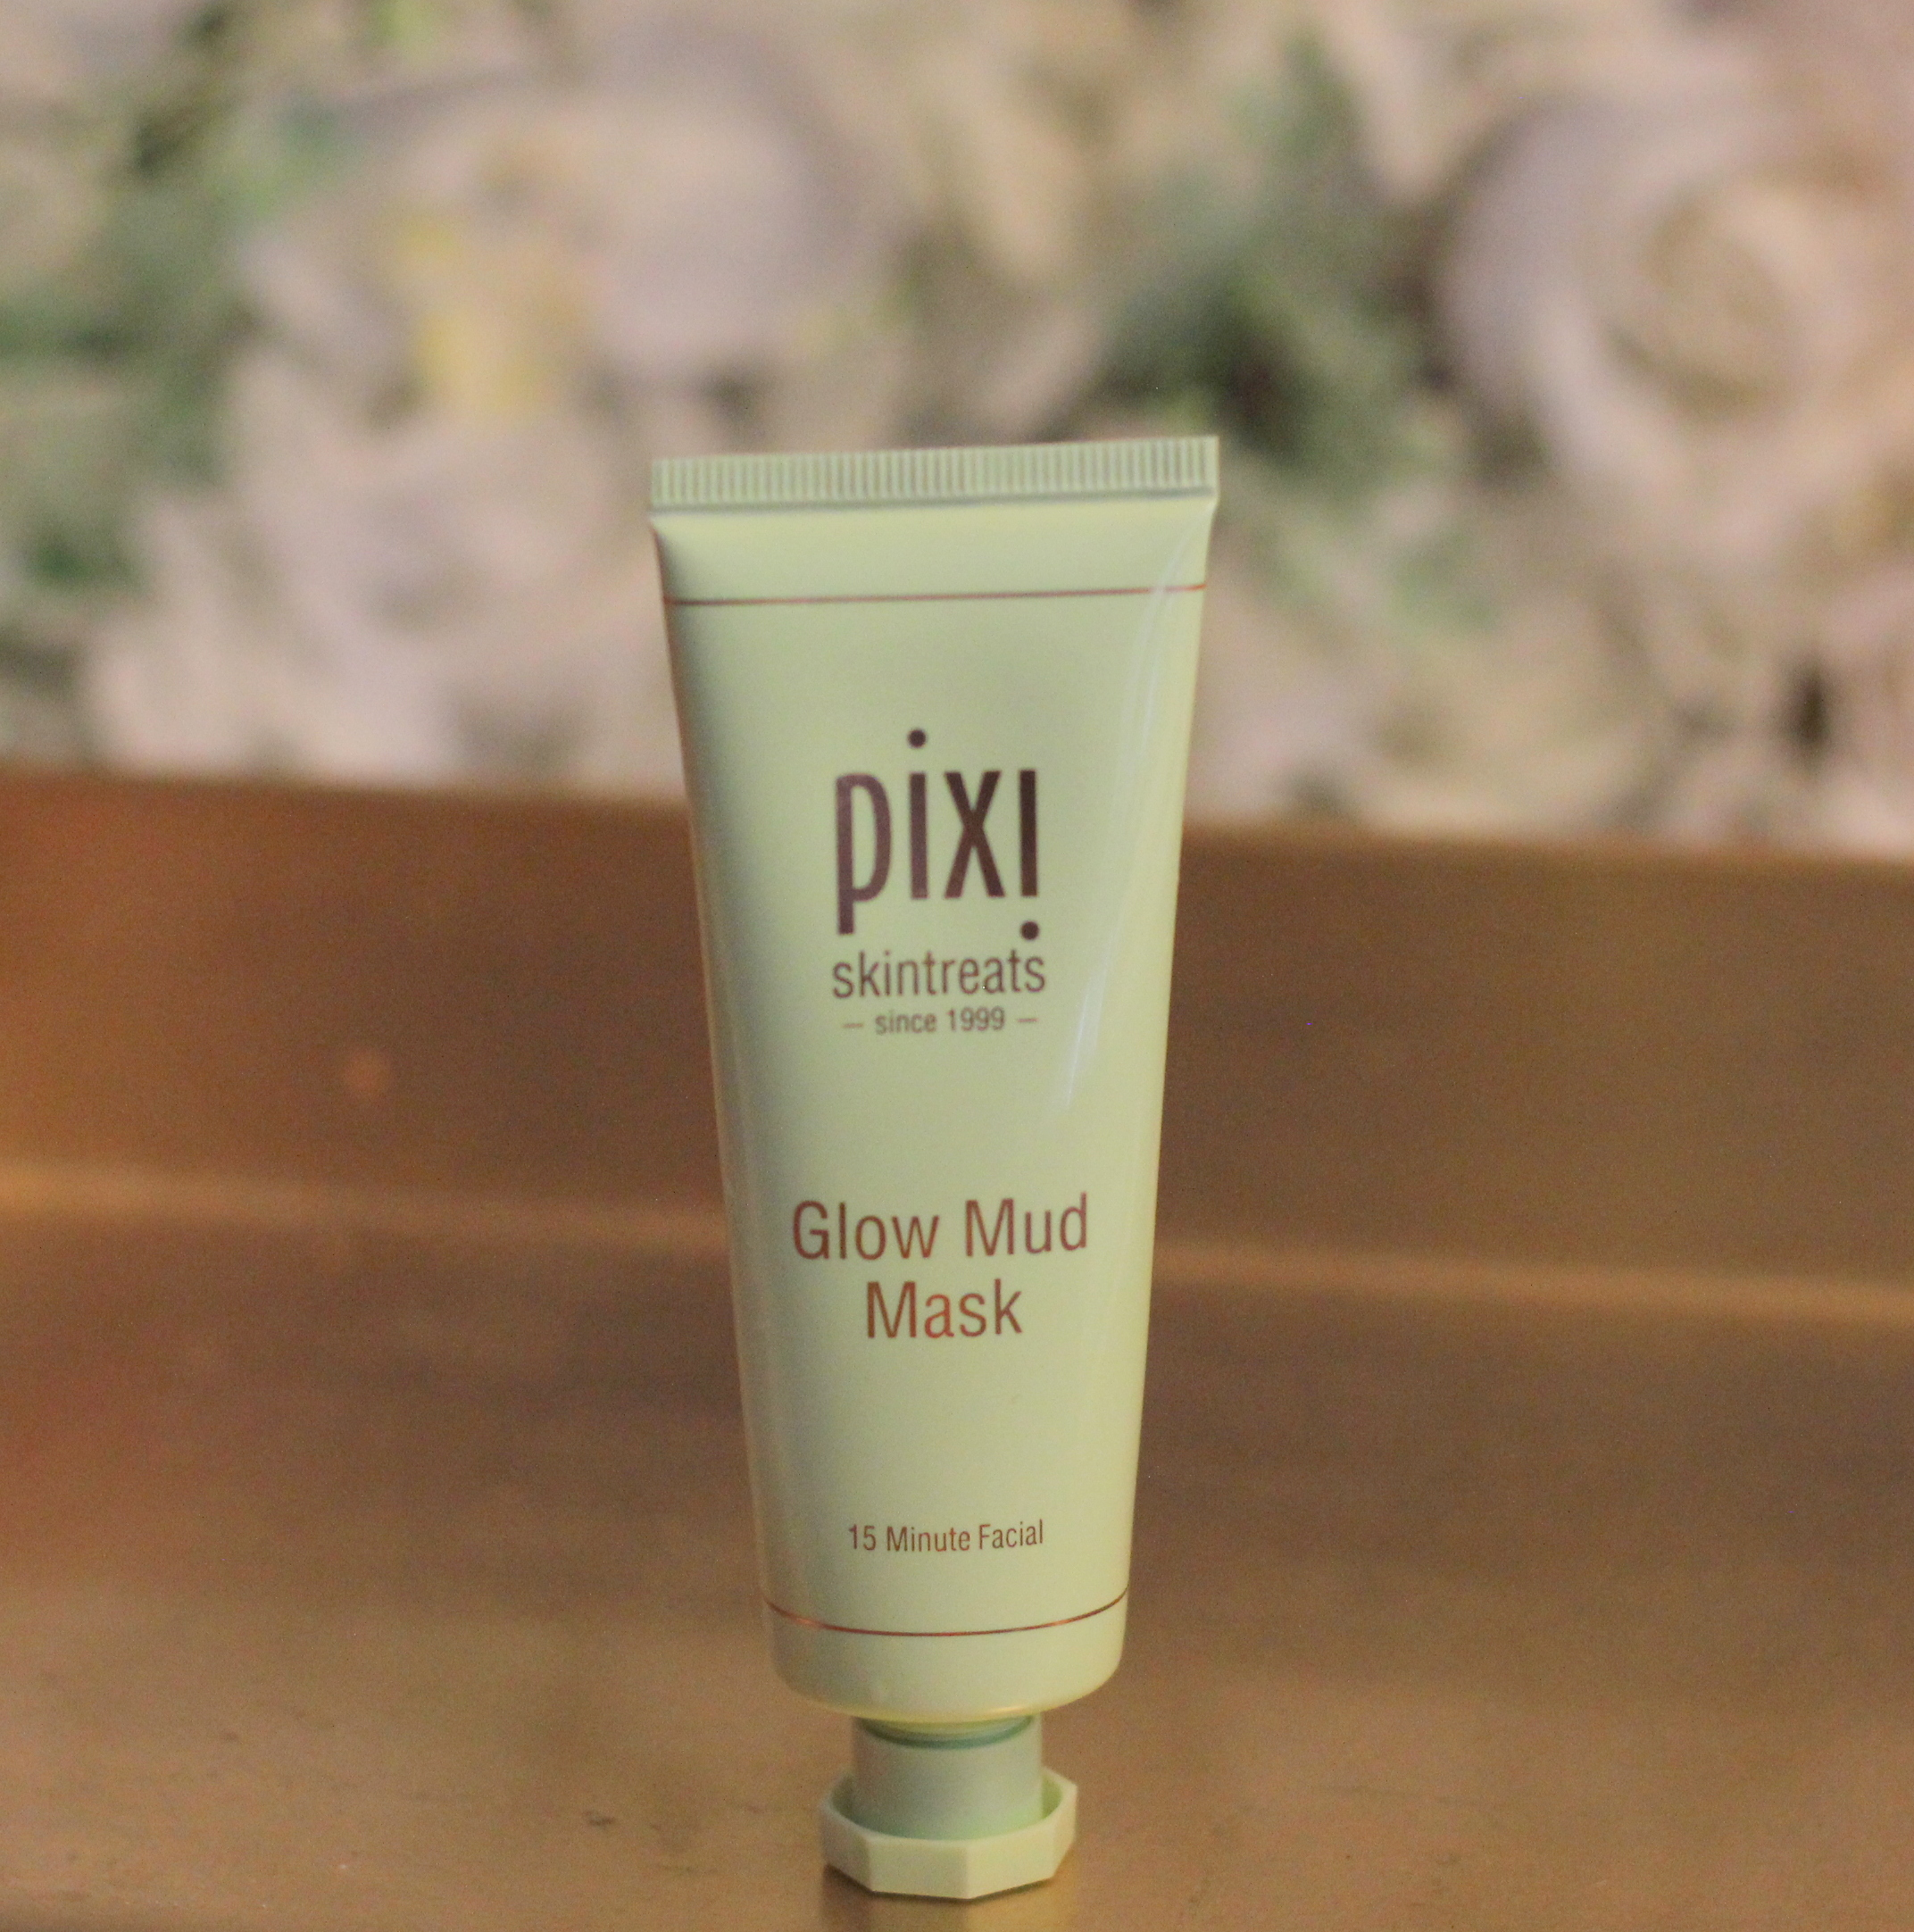 Pixi Glow Mud Mask Clears Pores with a Gentle Touch